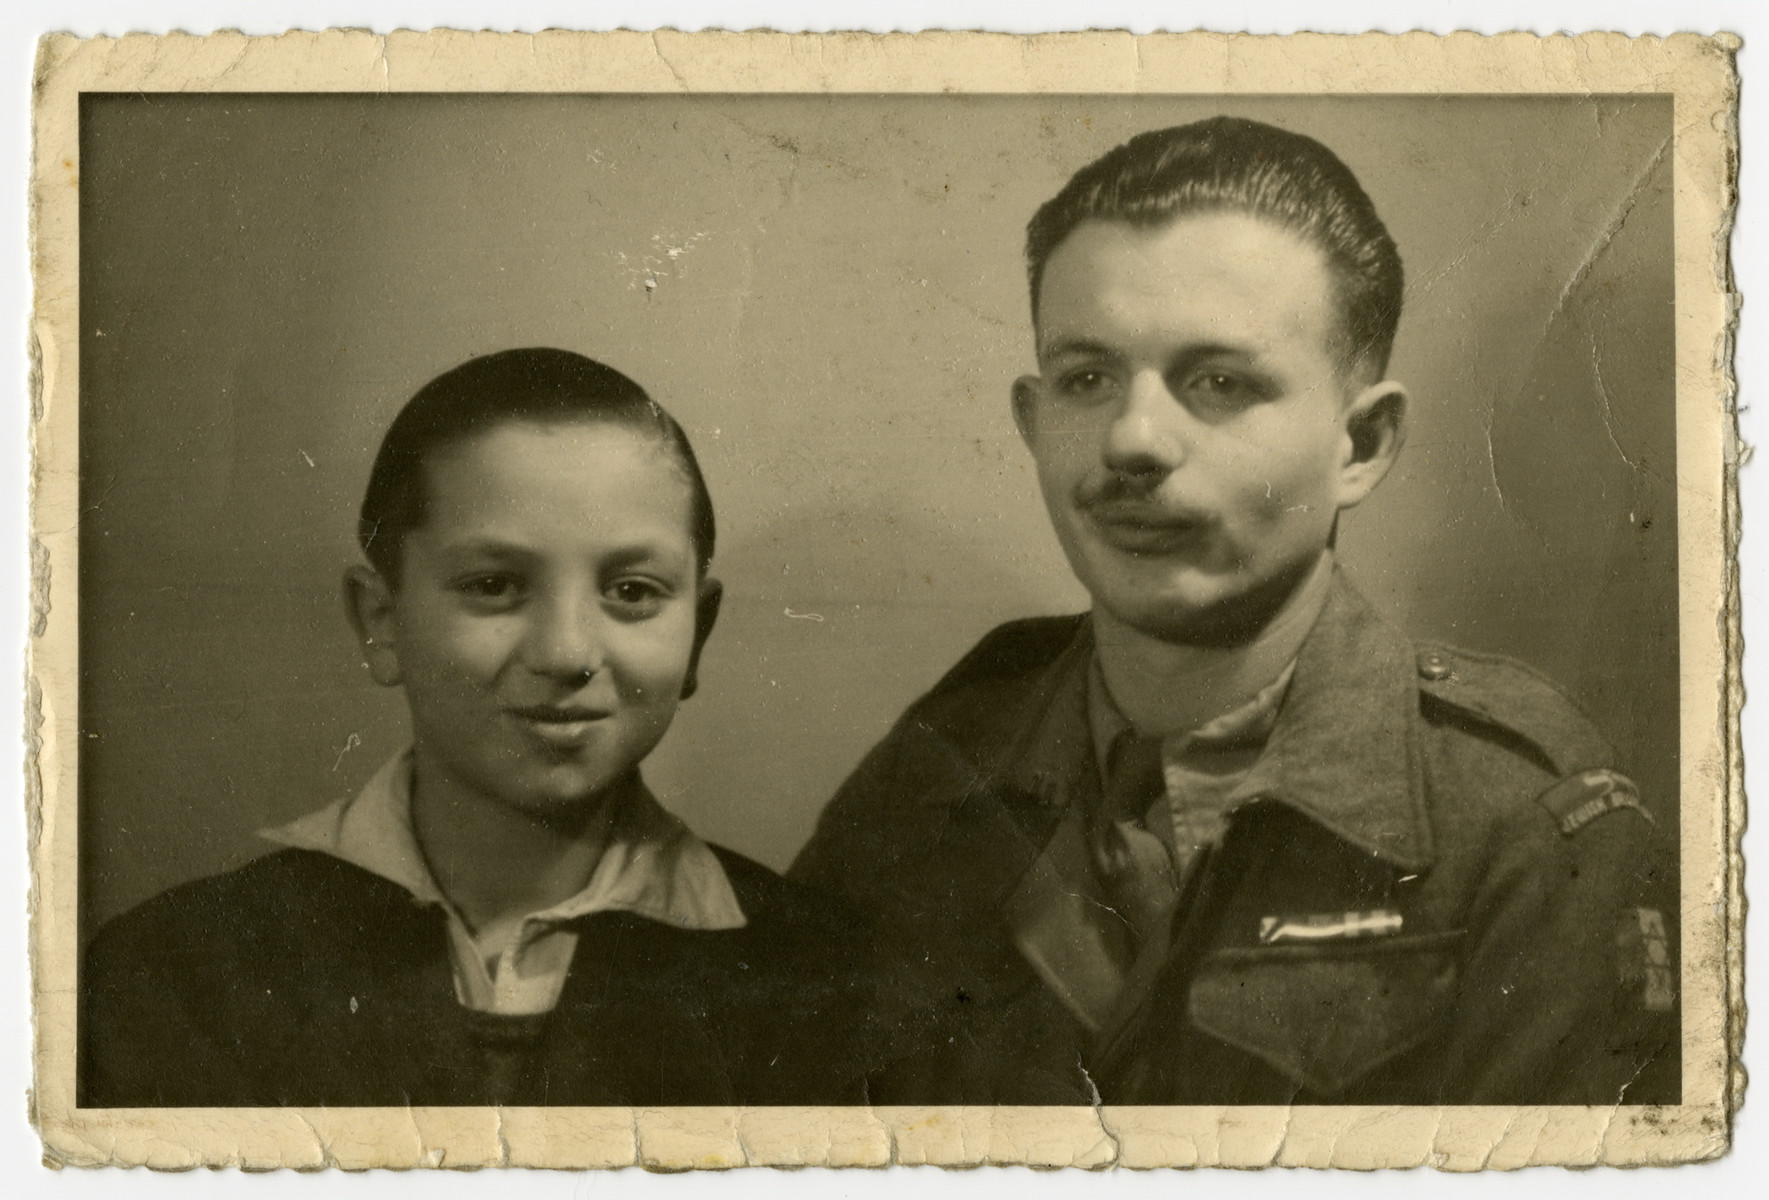 Charles Rojer poses with Dov Stein, a member of the Jewish Brigade who befriended him after the war.    Dov Stein was later killed during an Arab raid.